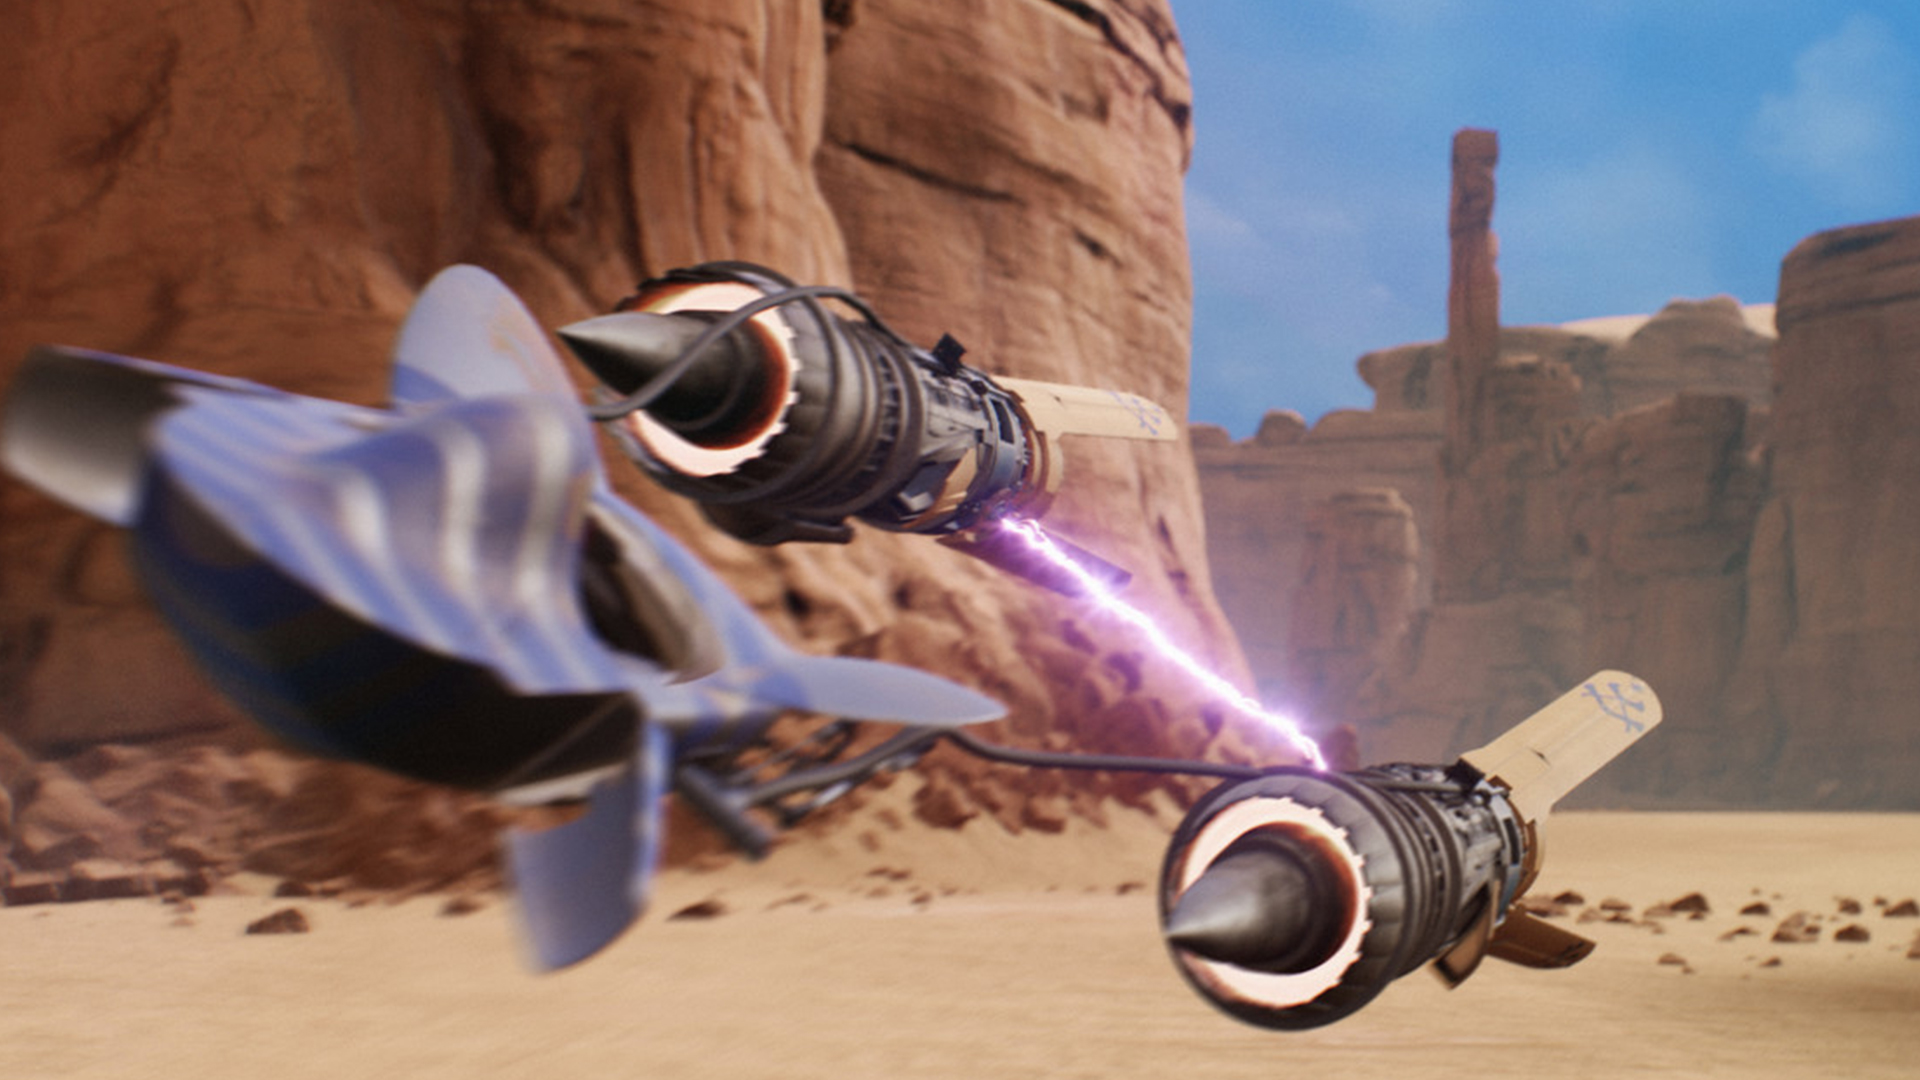 Star Wars Episode I: Racer lives again in Unreal Engine 4 – and you can play a demo